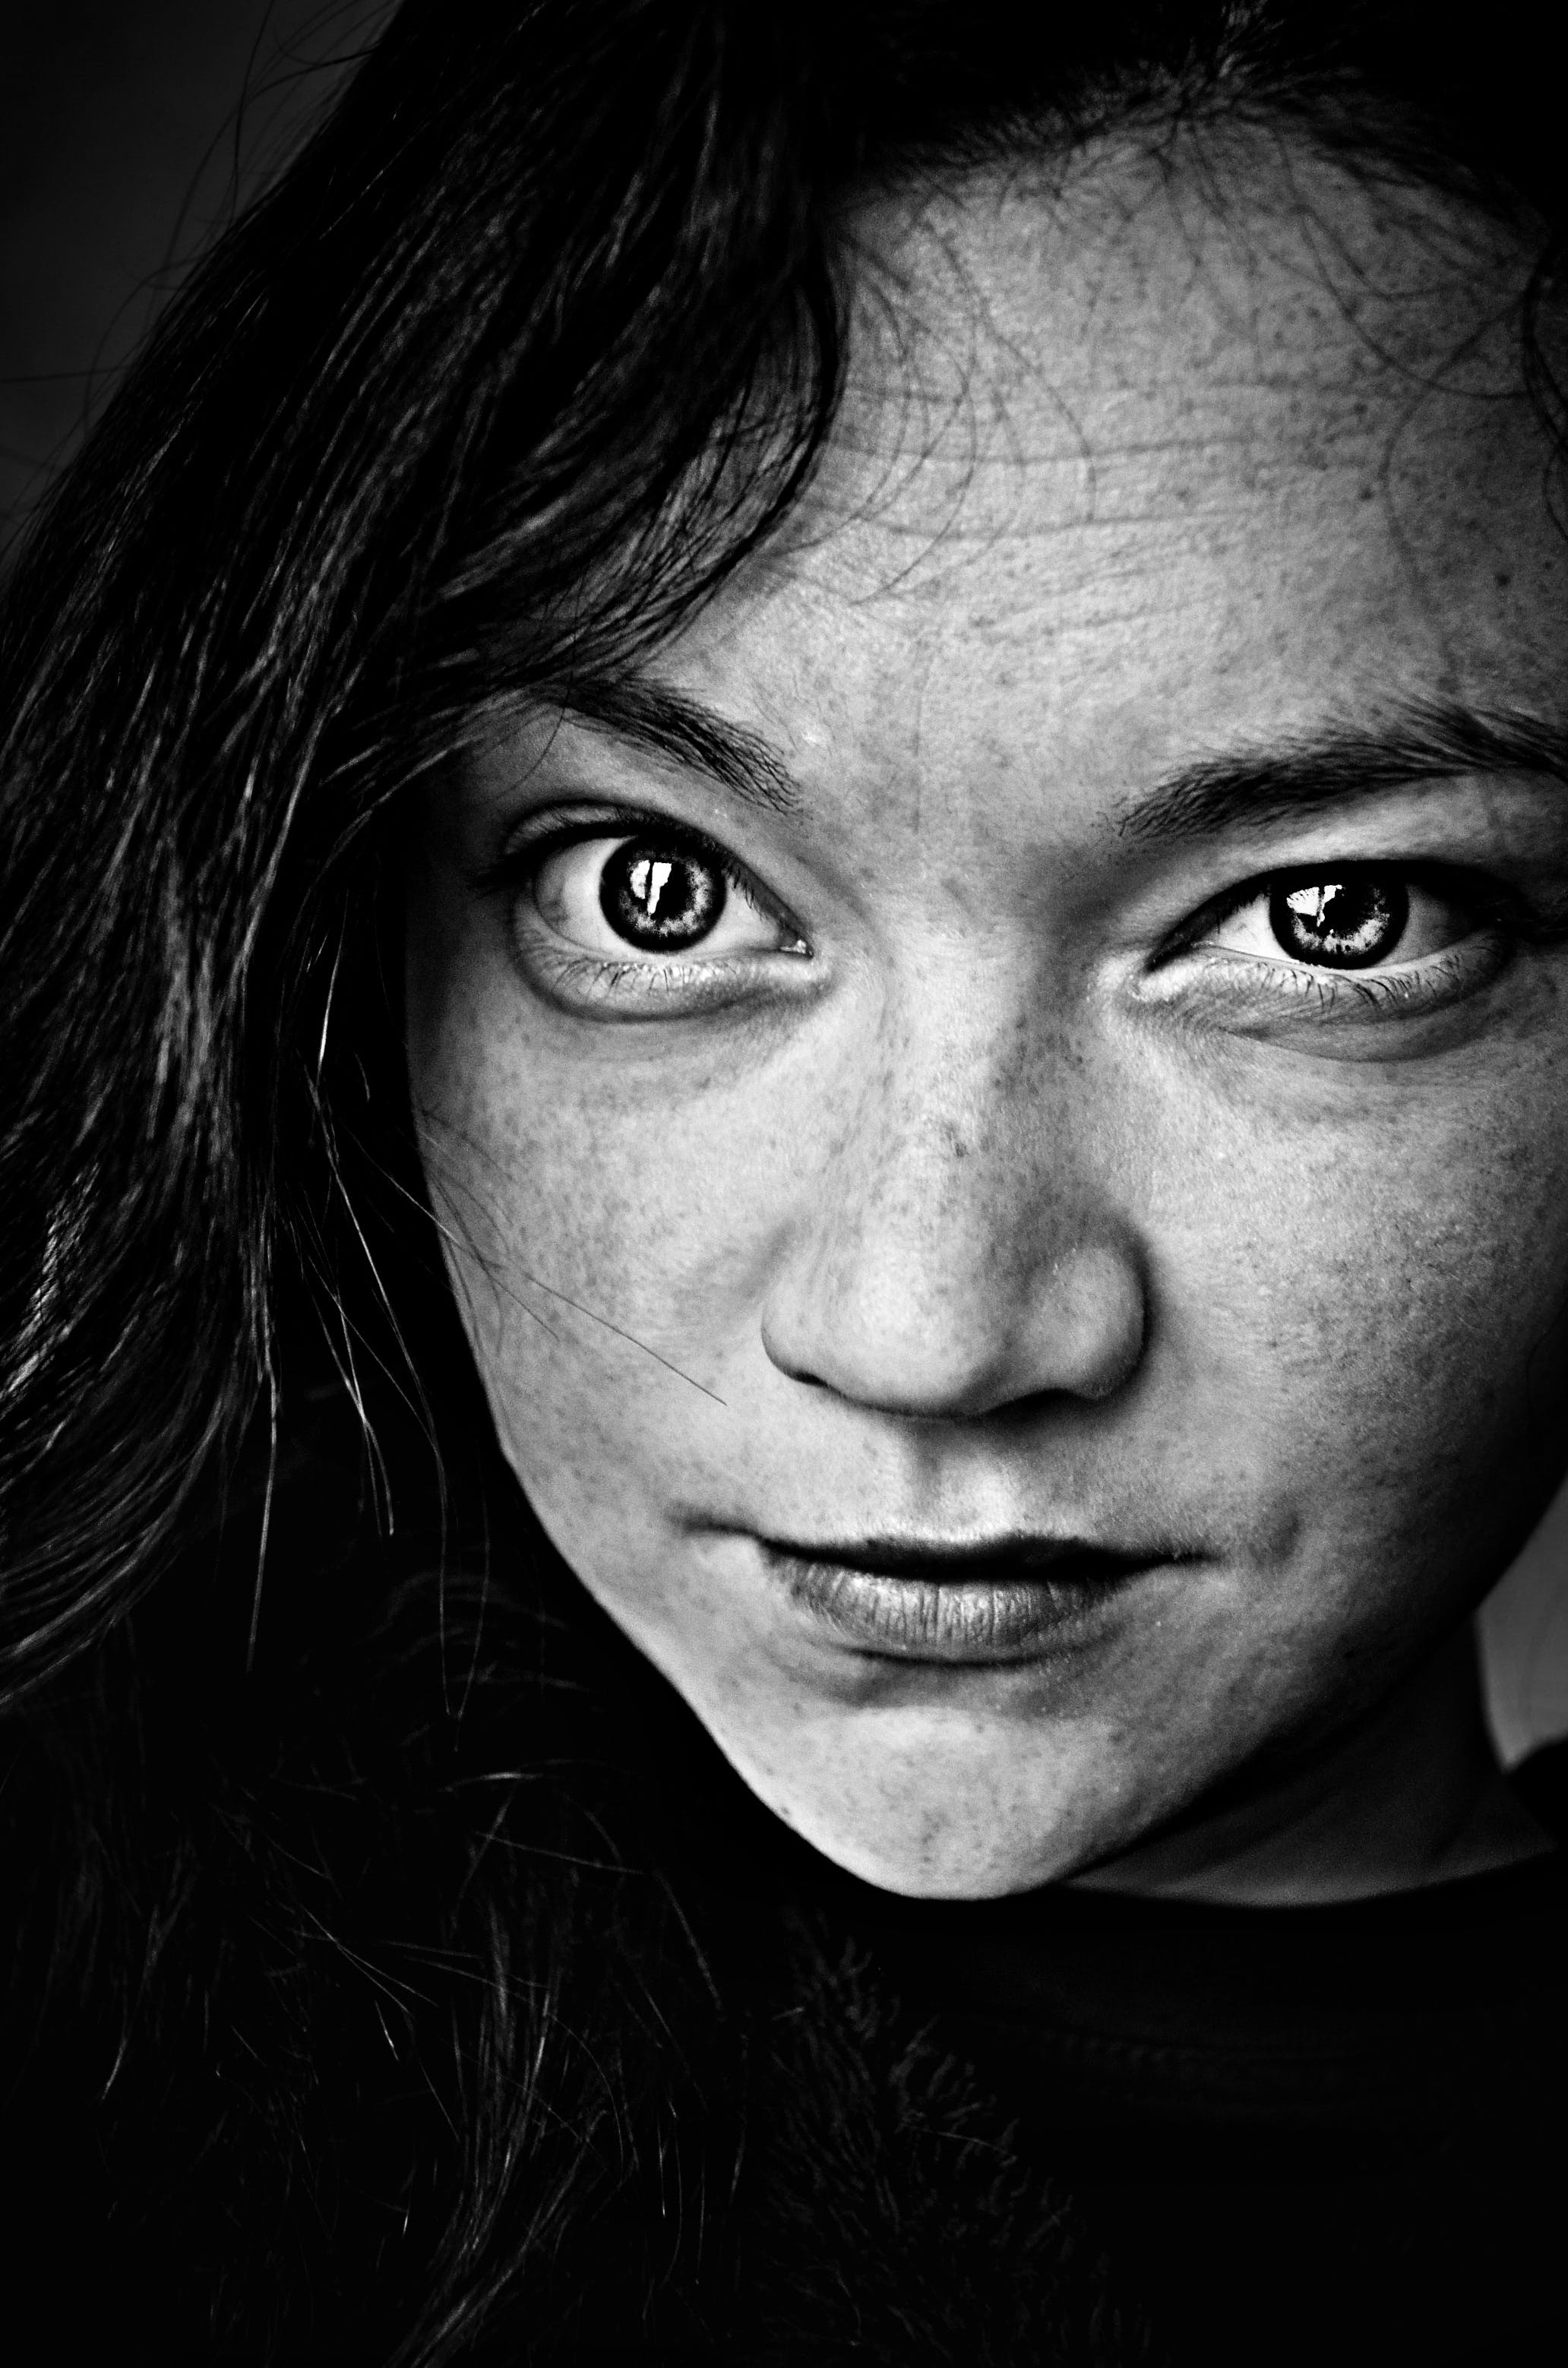 Woman Face Grayscale Photo